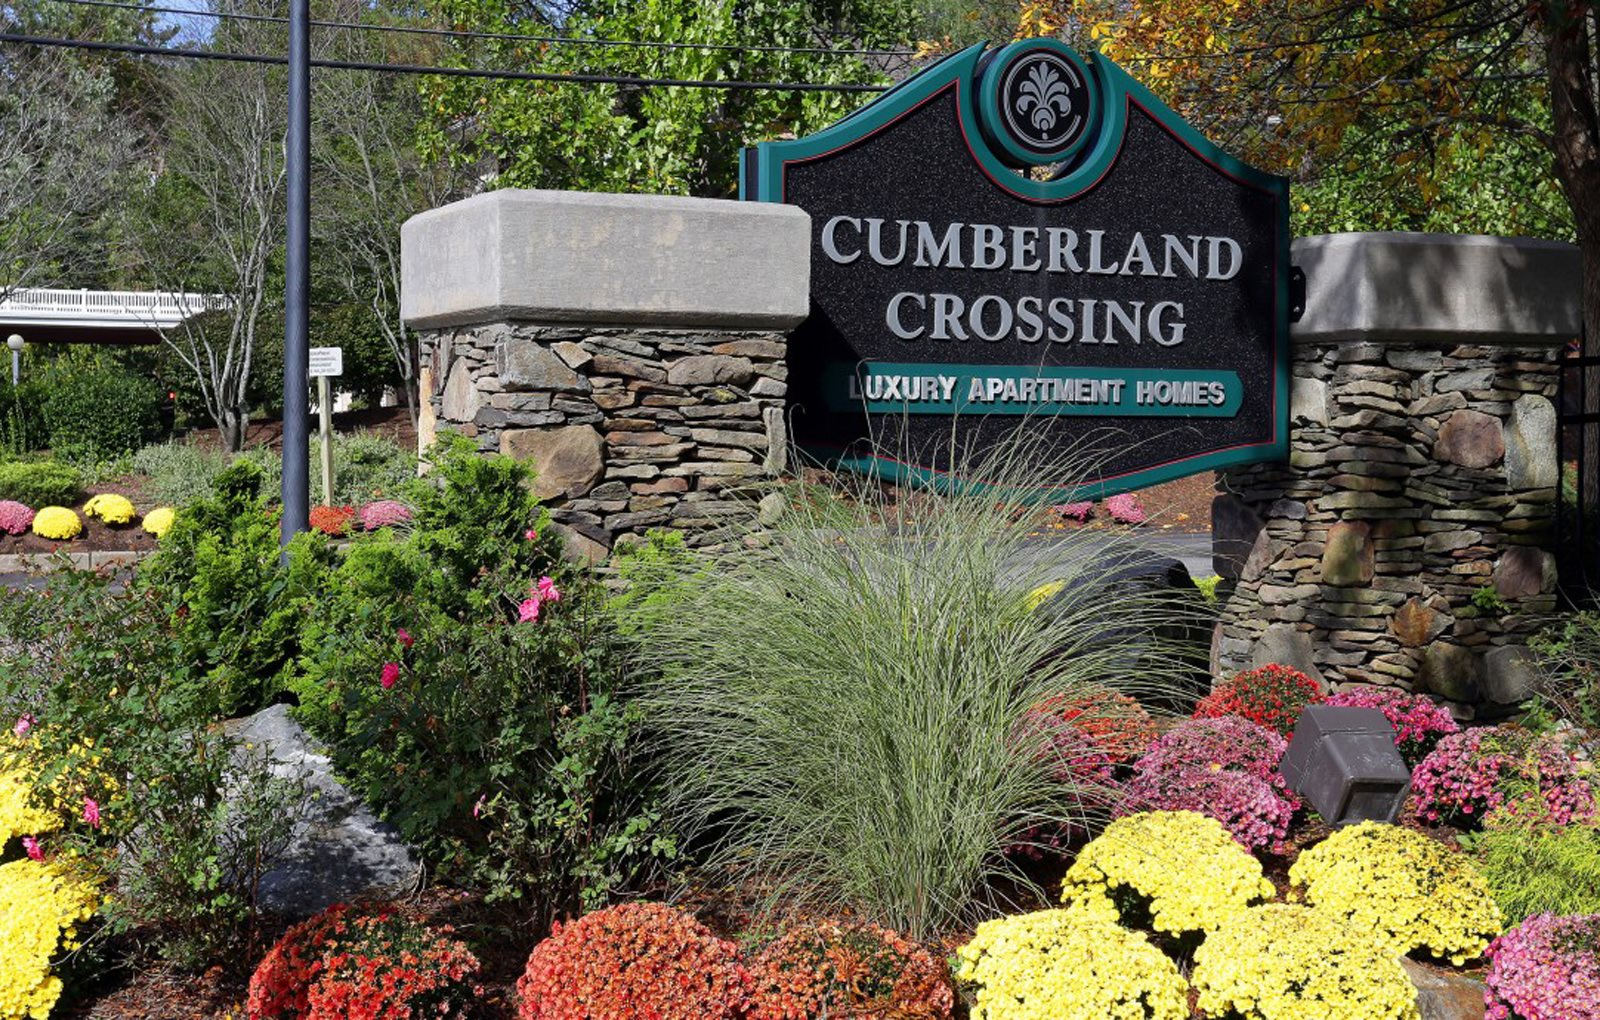 Sign and Gated Entrance to Cumberland Crossing, Cumberland, RI